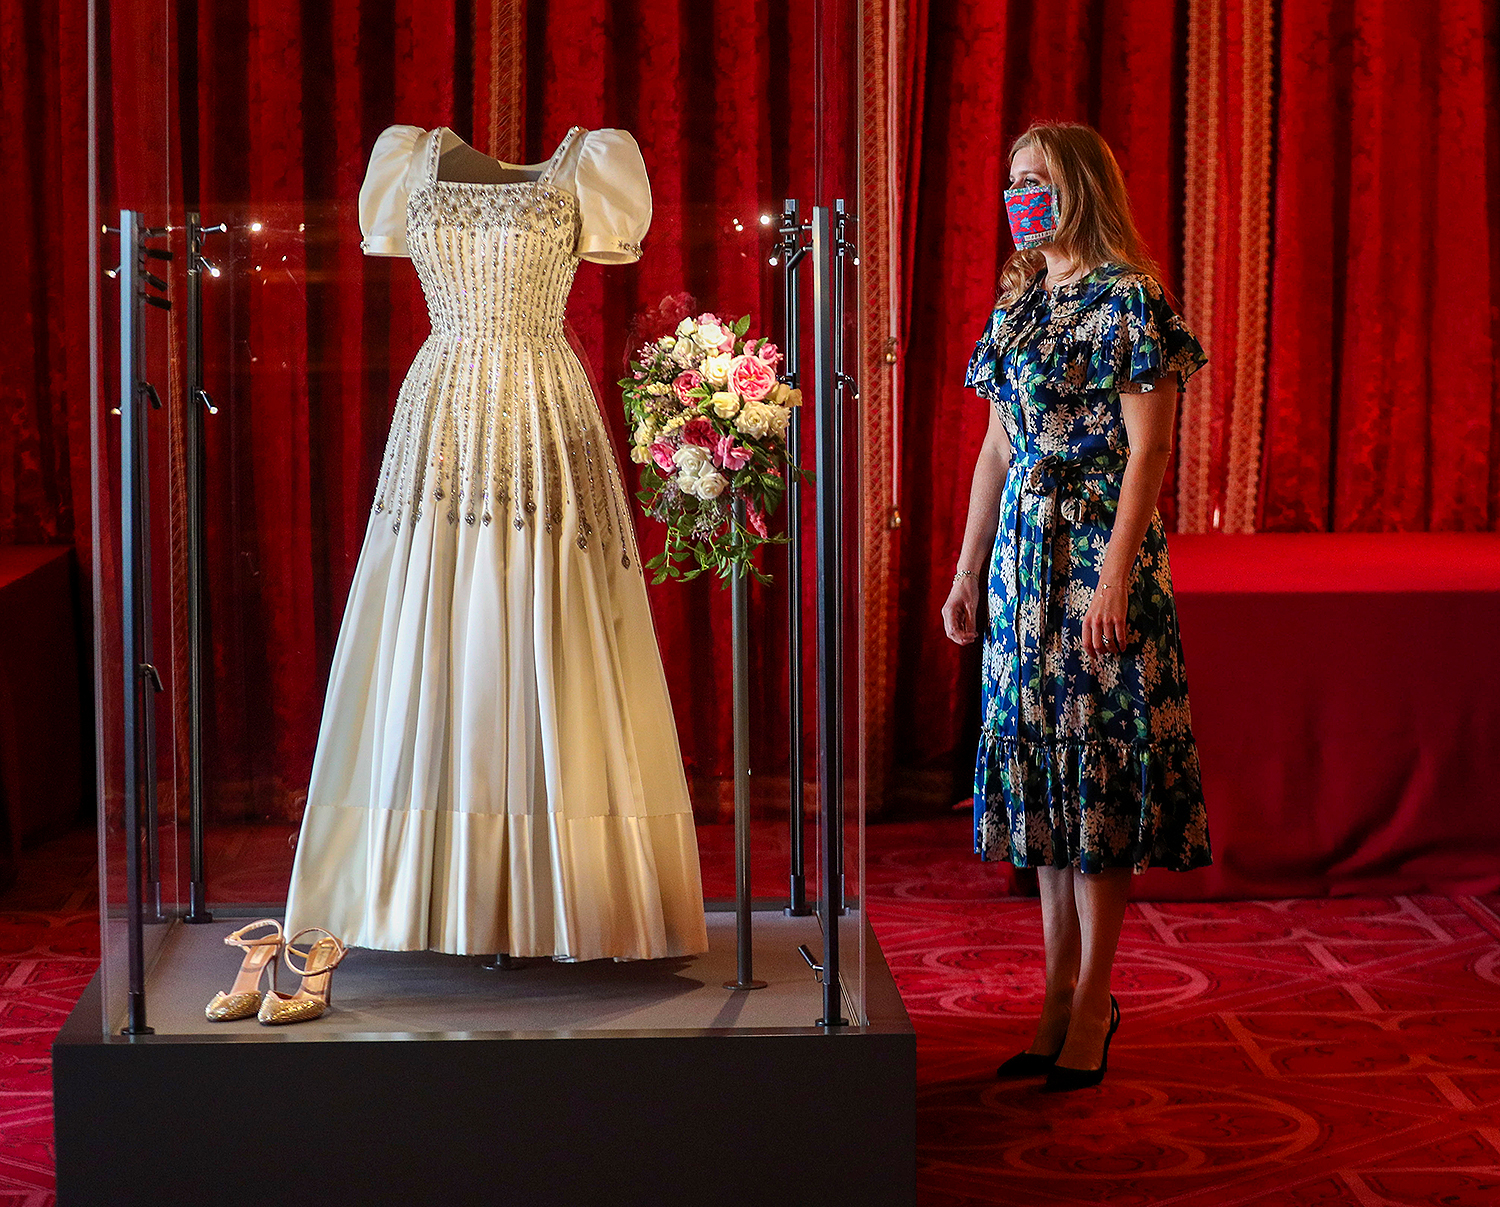 princess beatrice viewing her wedding dress loaned by queen elizabeth in windsor castle